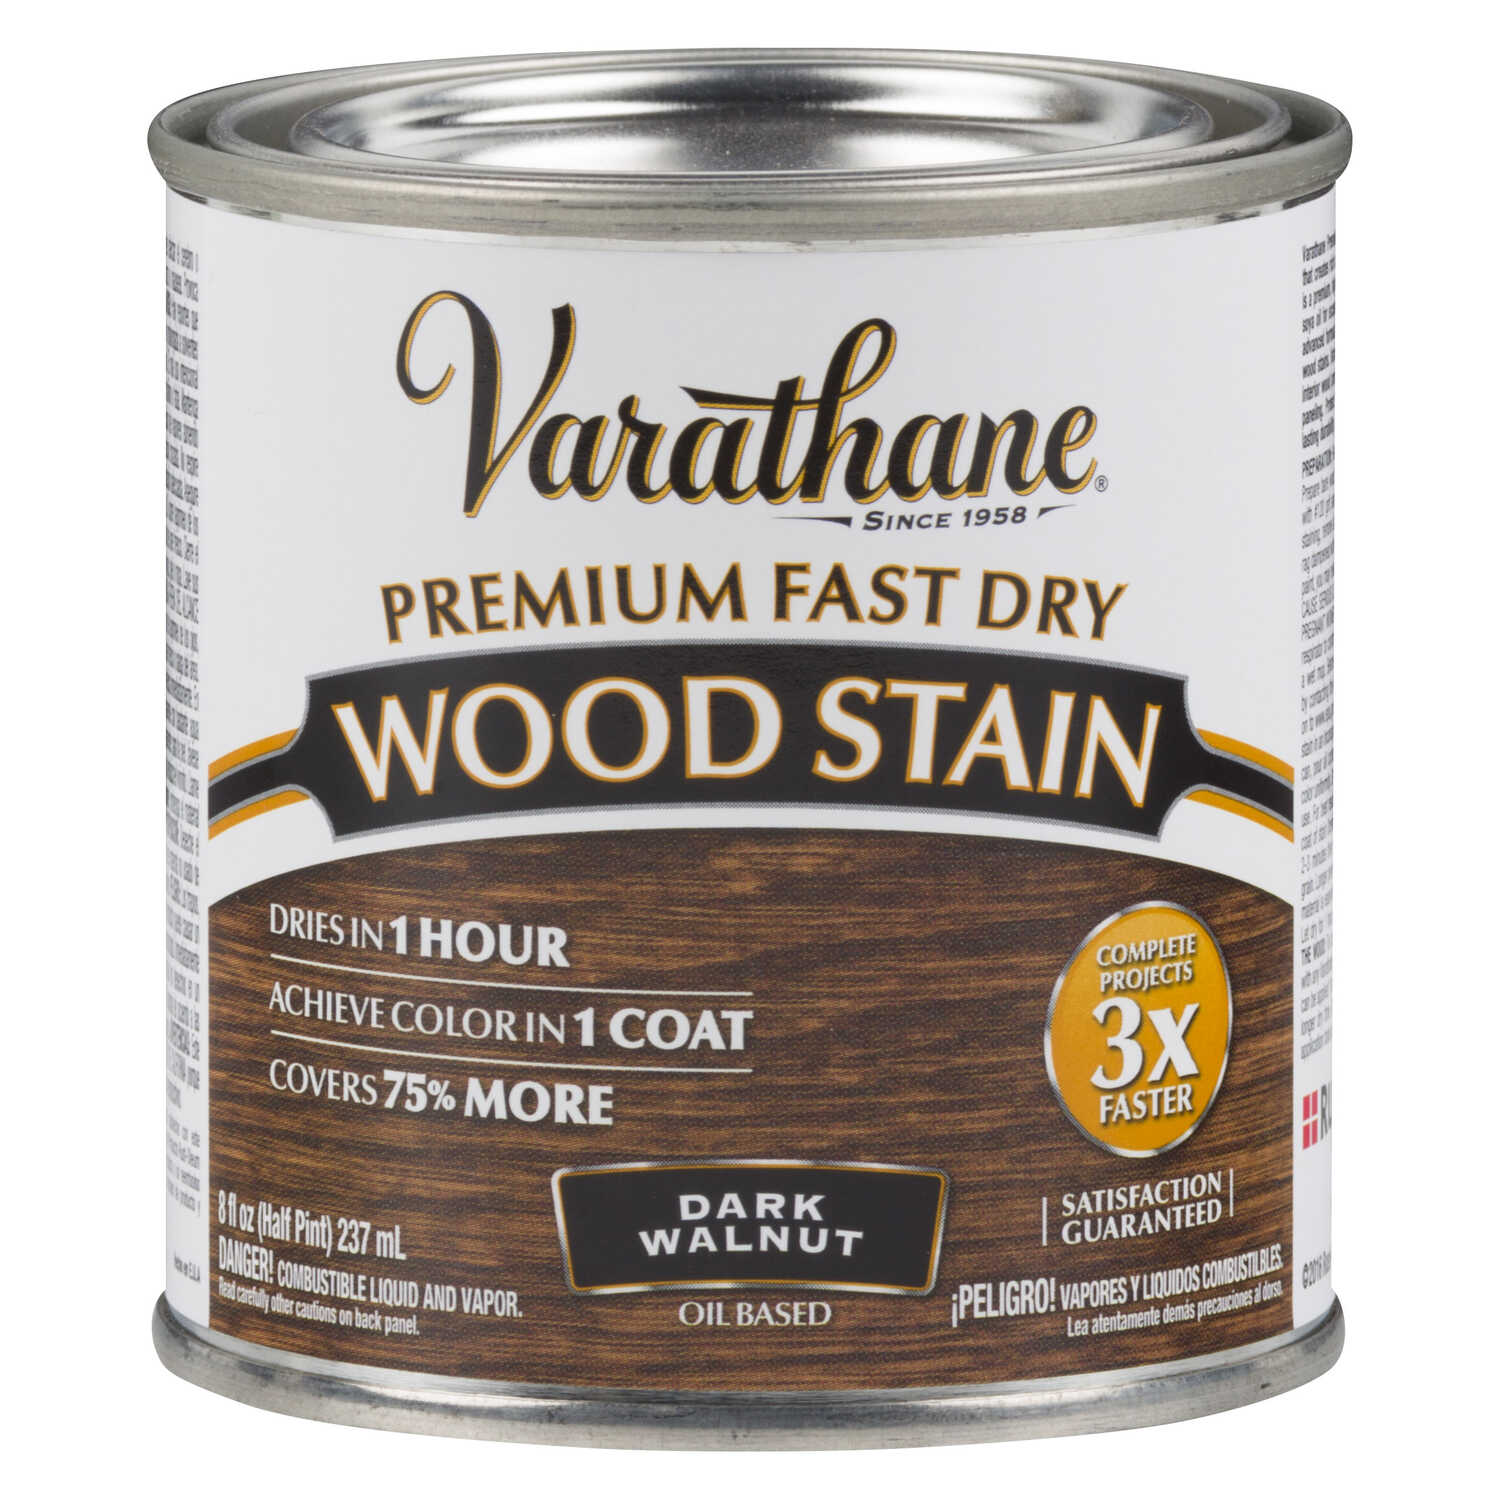 Varathane  Premium Fast Dry  Semi-Transparent  Dark Walnut  Wood Stain  0.5 pt.